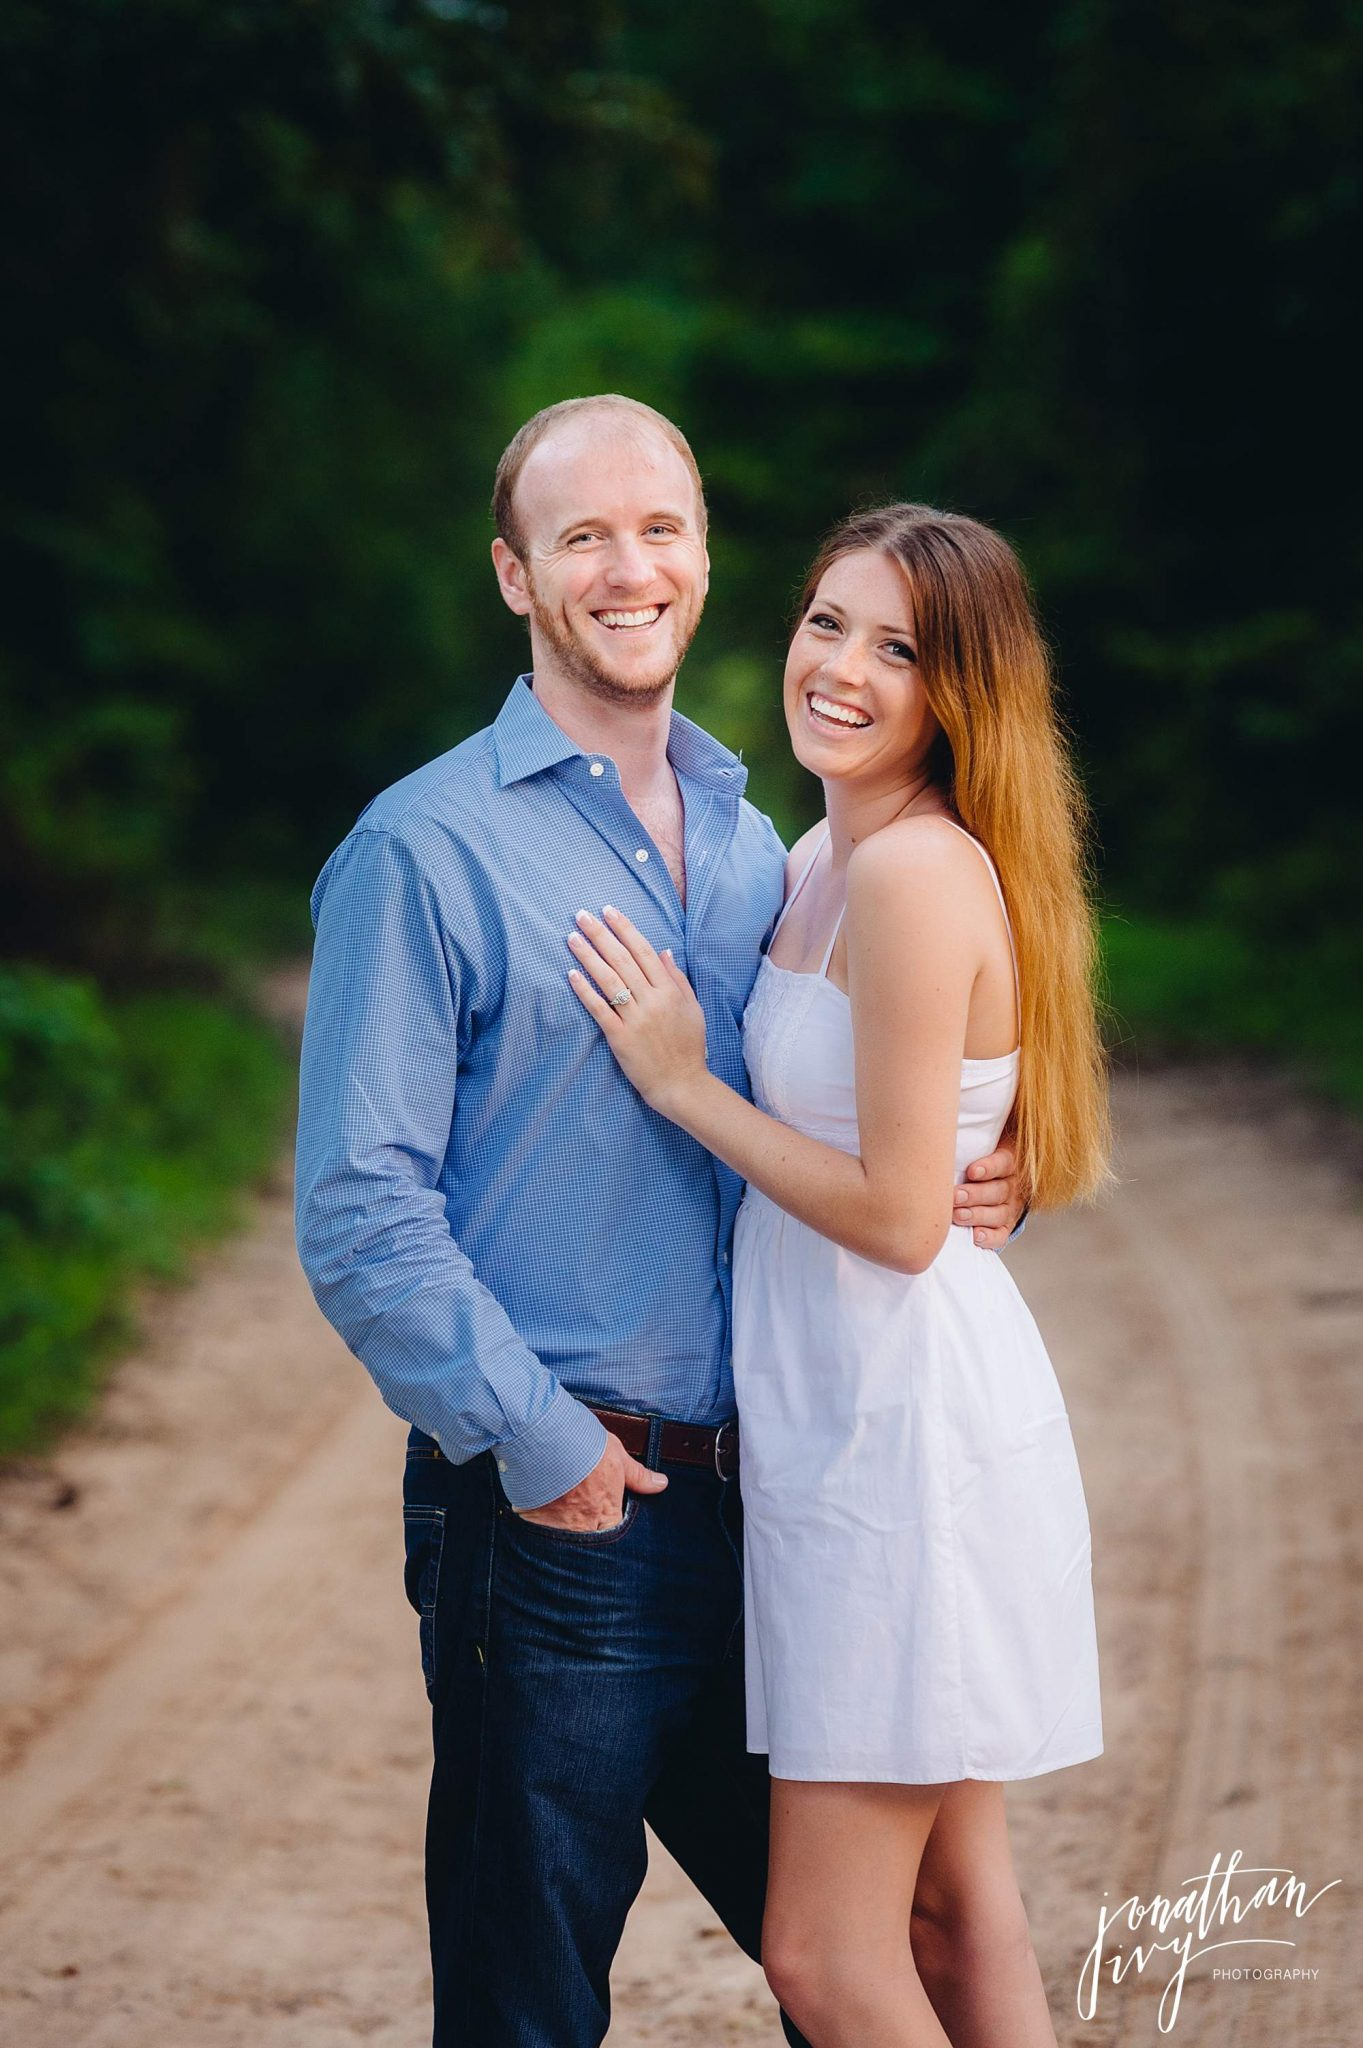 Country-rustic-engagement-photographer_0015.jpg